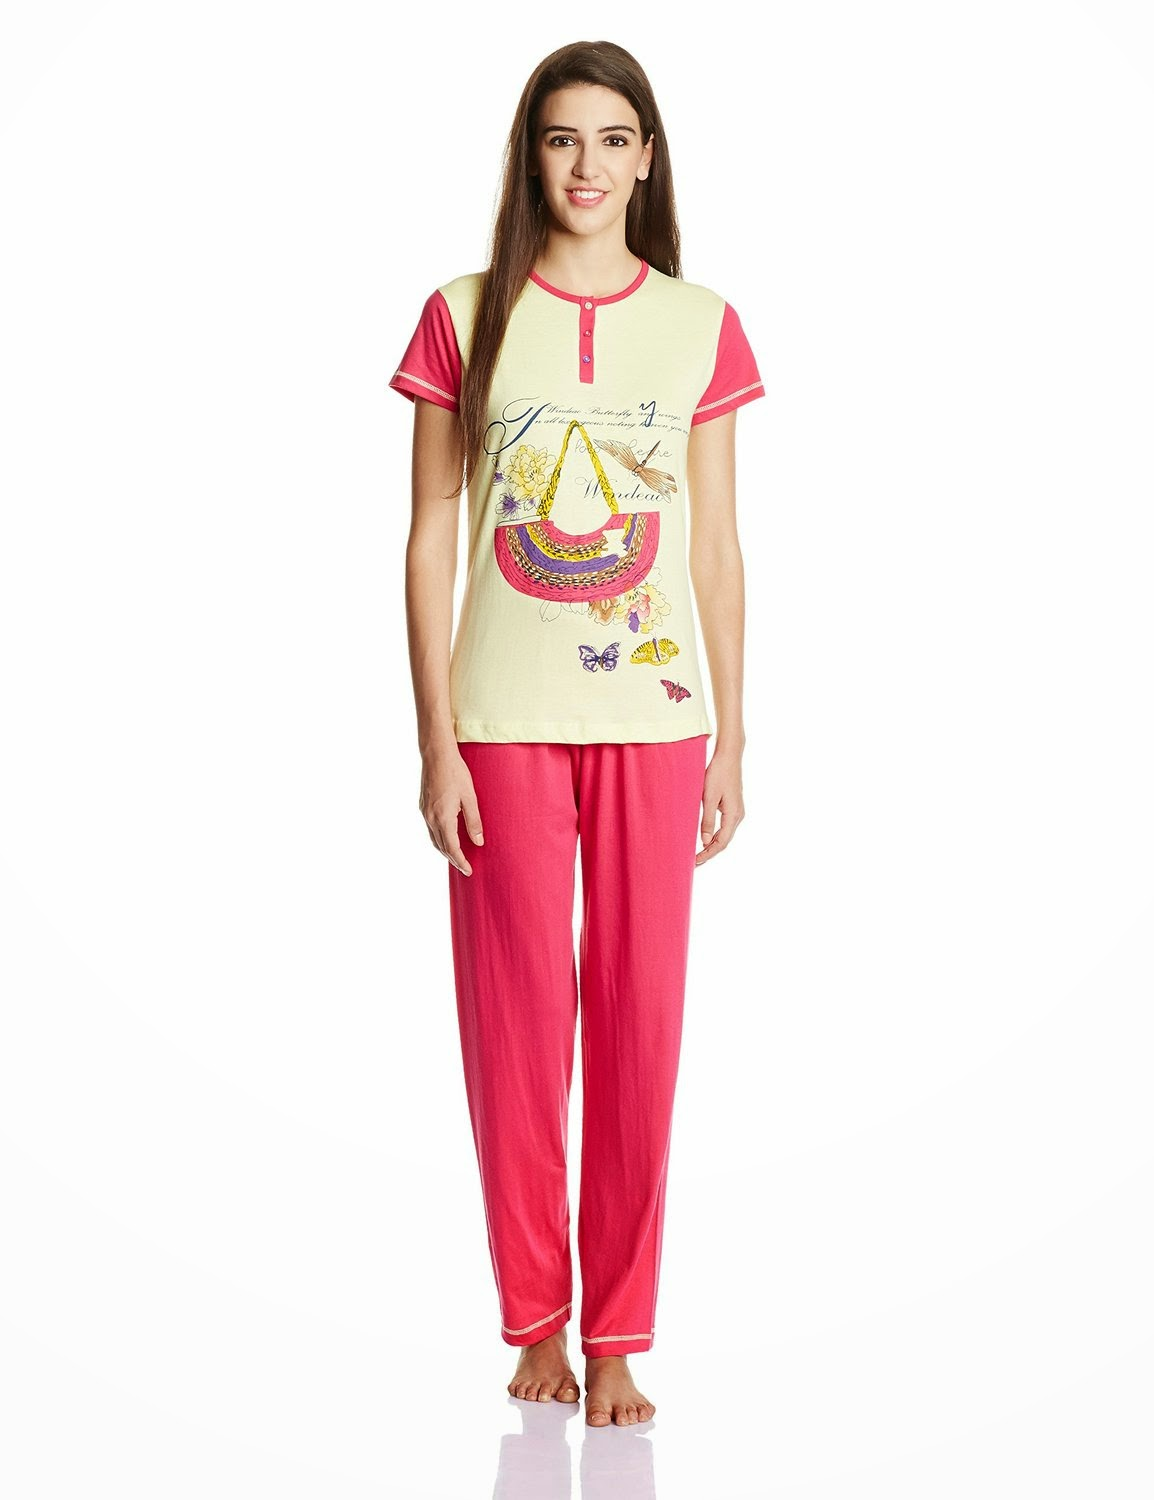 Buy Ziva Fashion Women's Cotton Pyjama Set at Rs 299 only